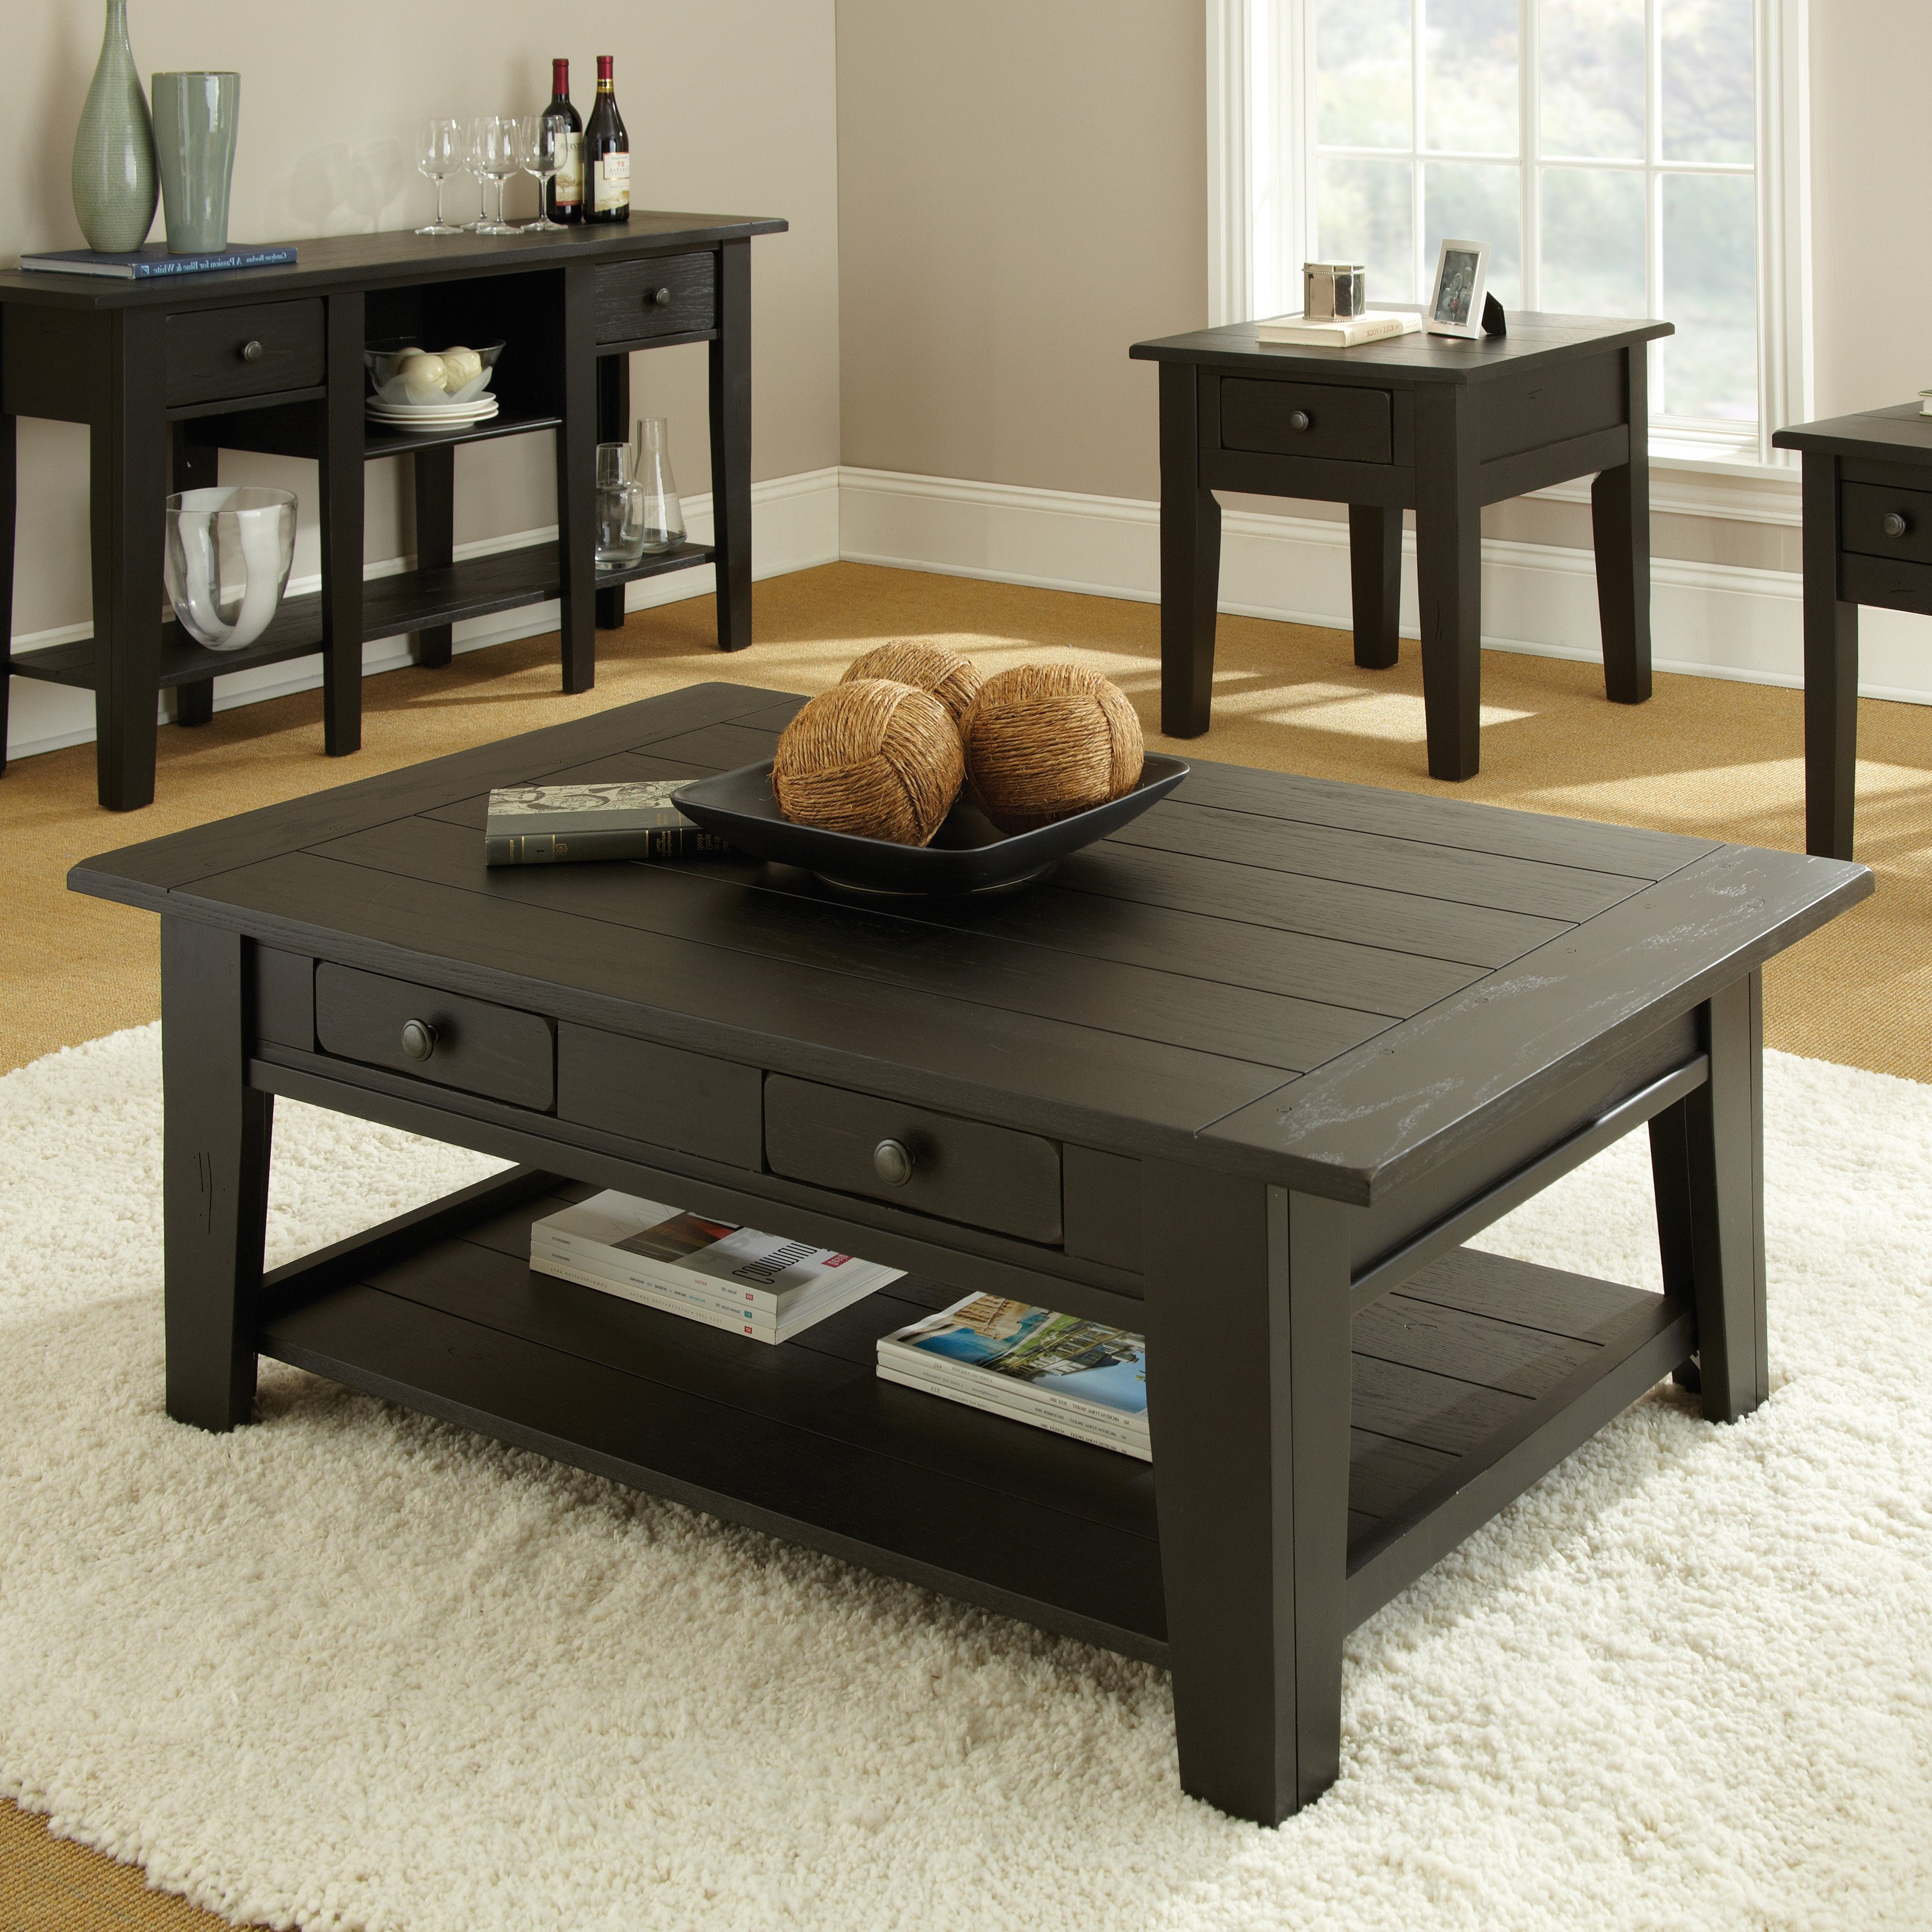 Widely Used Images Of Coffee Tables Elegant Kai Small Coffee Table With Kai Small Coffee Tables (View 20 of 20)